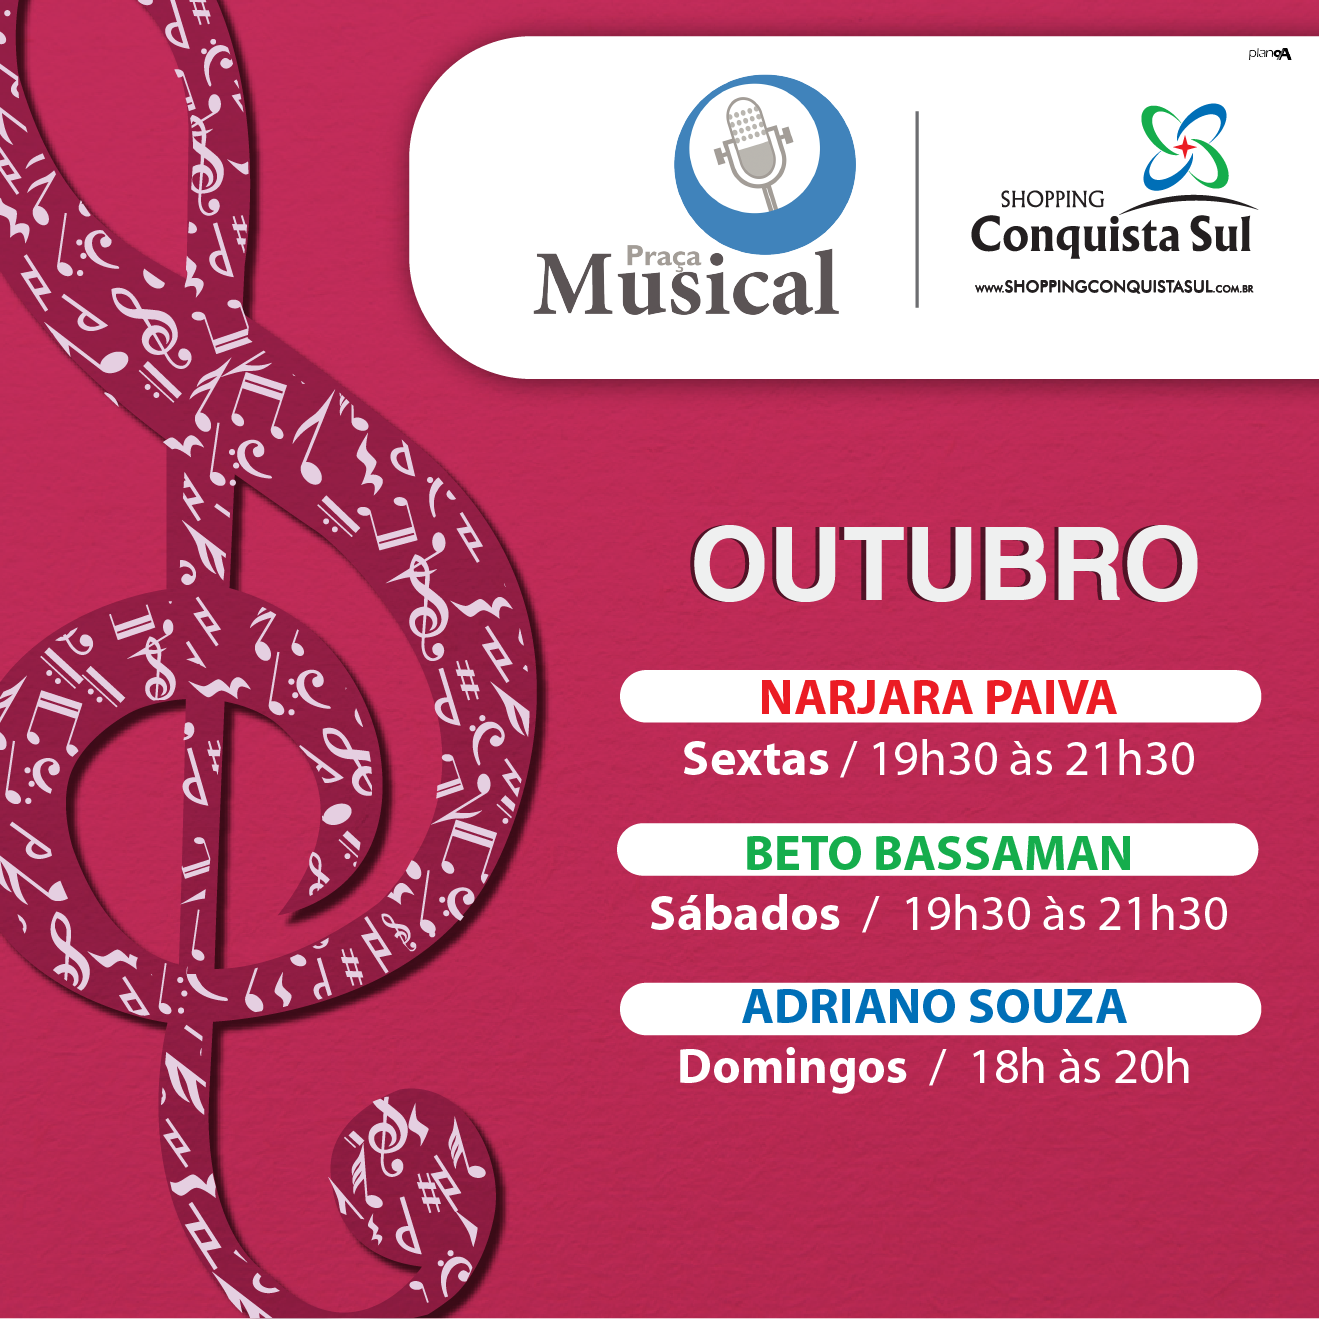 news musical - shopping - 950x950 - outubrp2015_POST